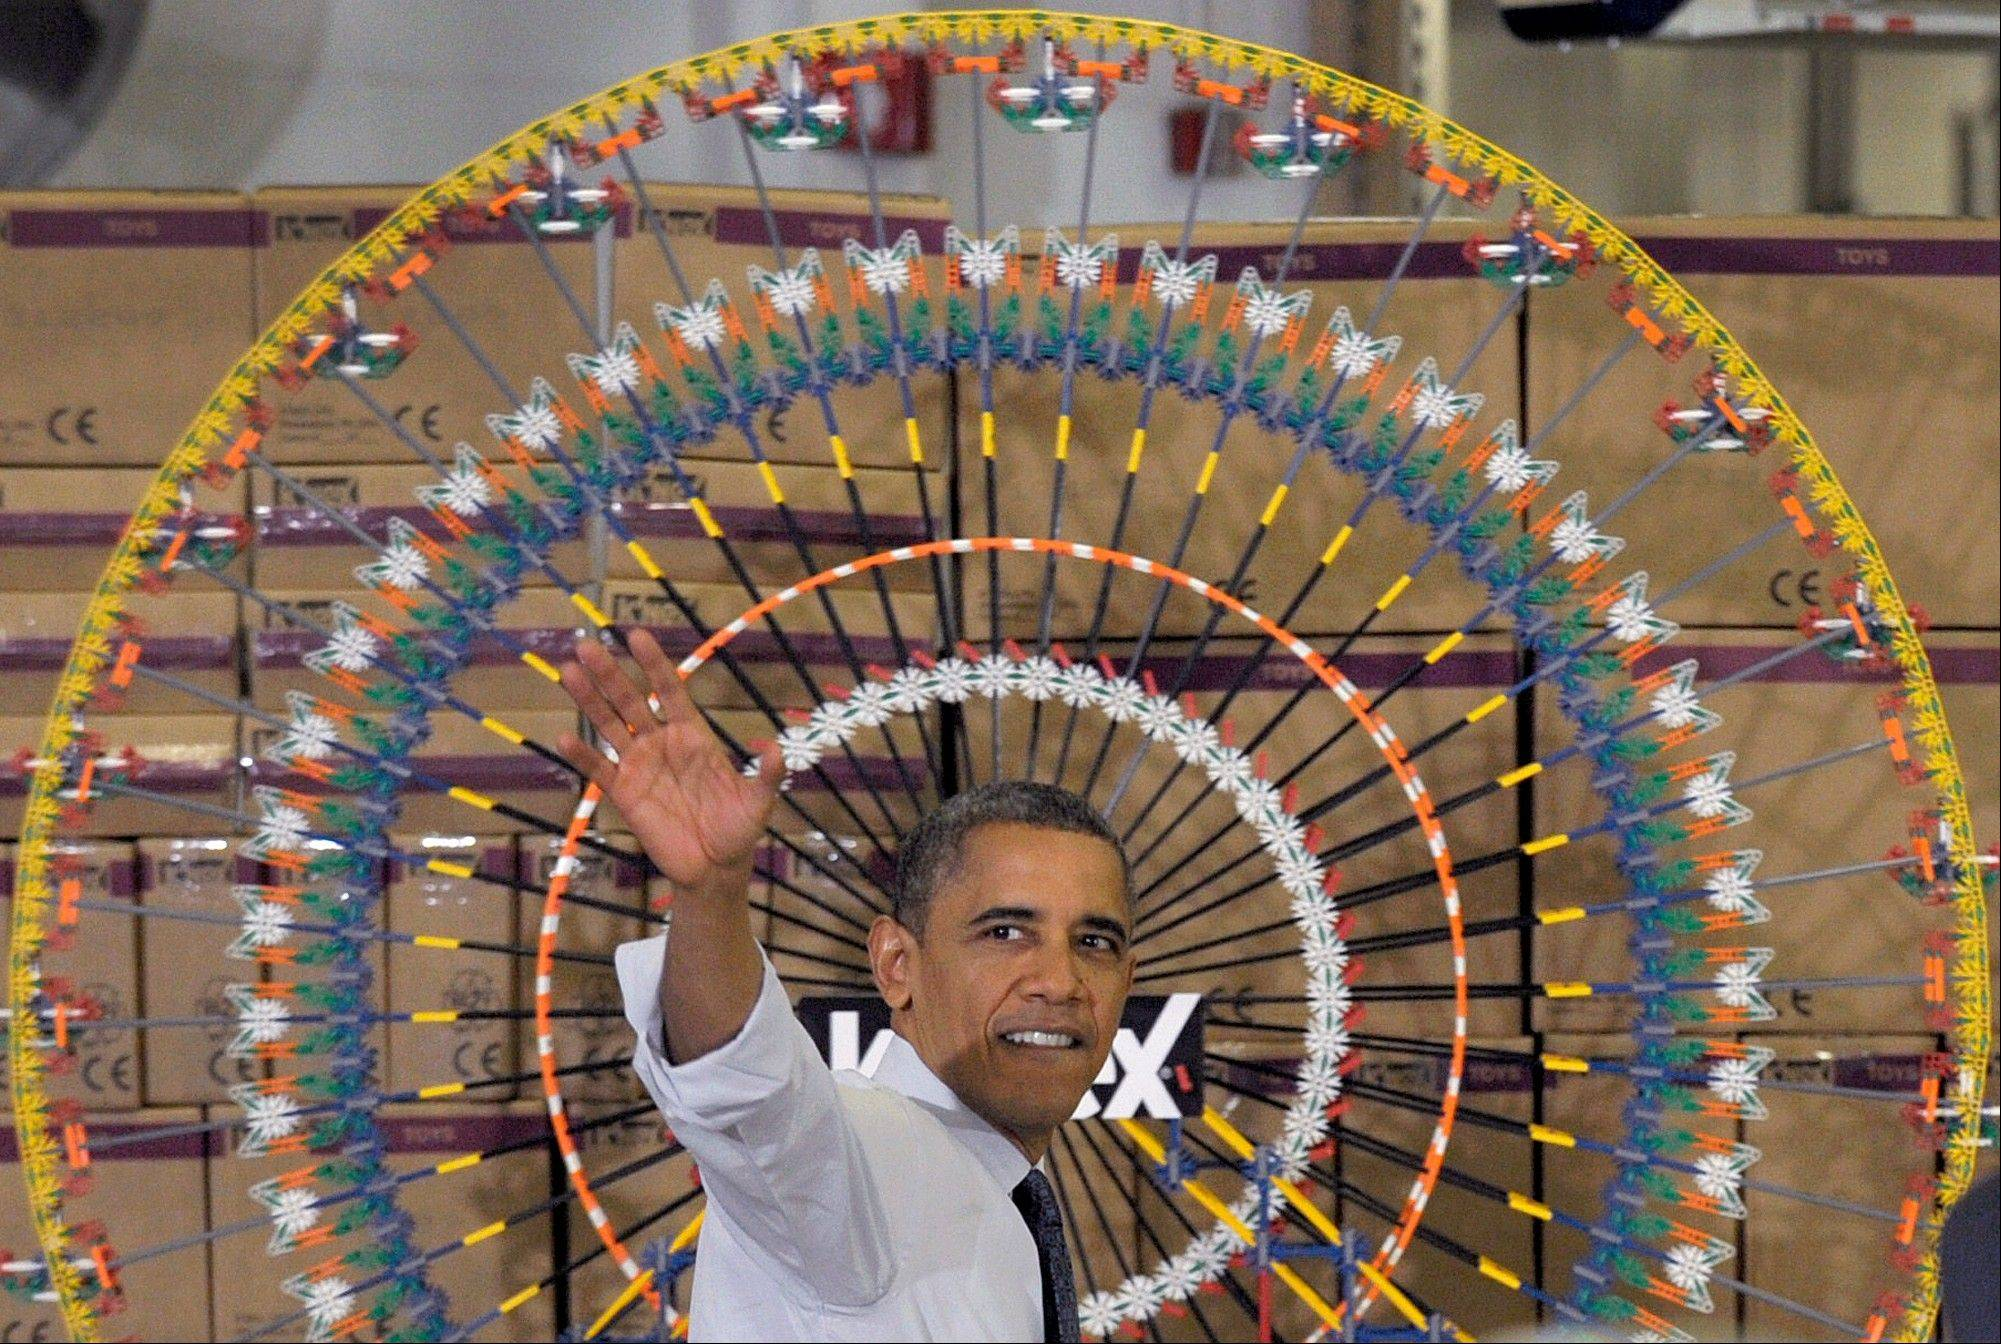 President Barack Obama waves Friday after speaking at the Rodon Group, which manufactures over 95% of the parts for K'NEX Brands toys, in Hatfield, Pa. The visit comes as the White House continues a week of public outreach efforts, while also attempting to negotiate a deal with congressional leaders.